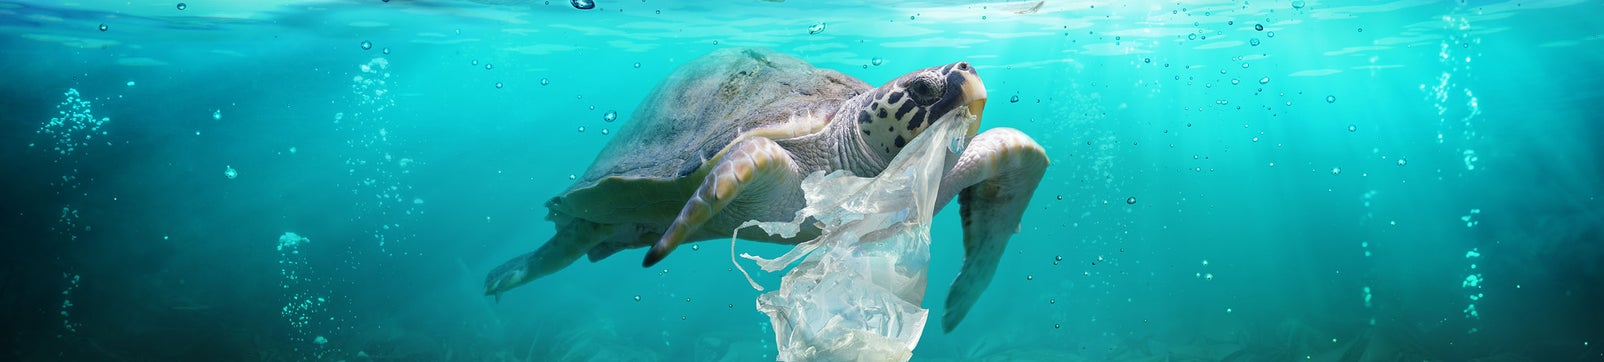 Turtle underwater with a plastic bag